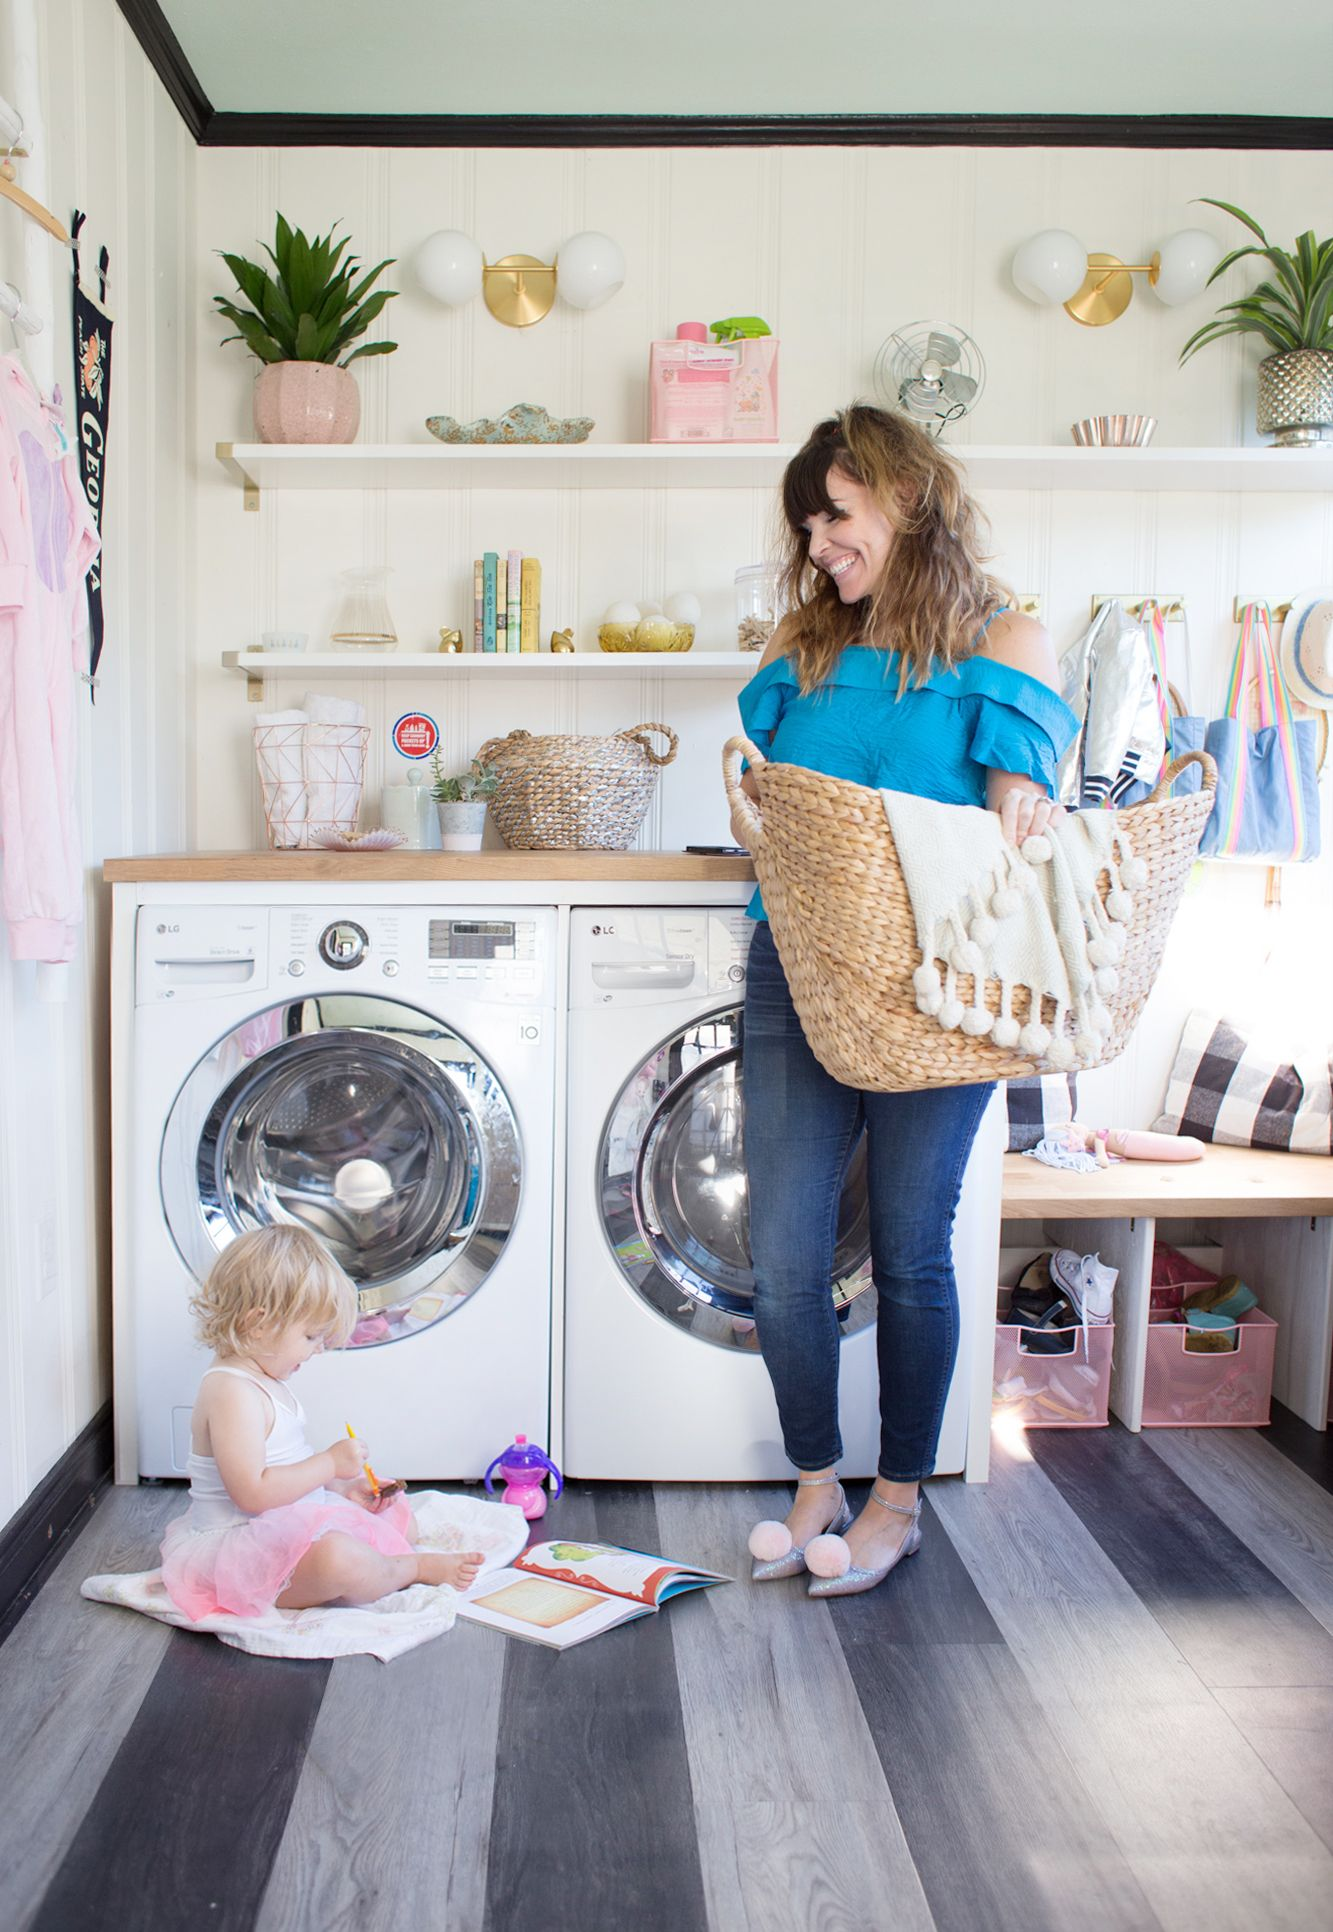 Laundry Room Organization And Safety